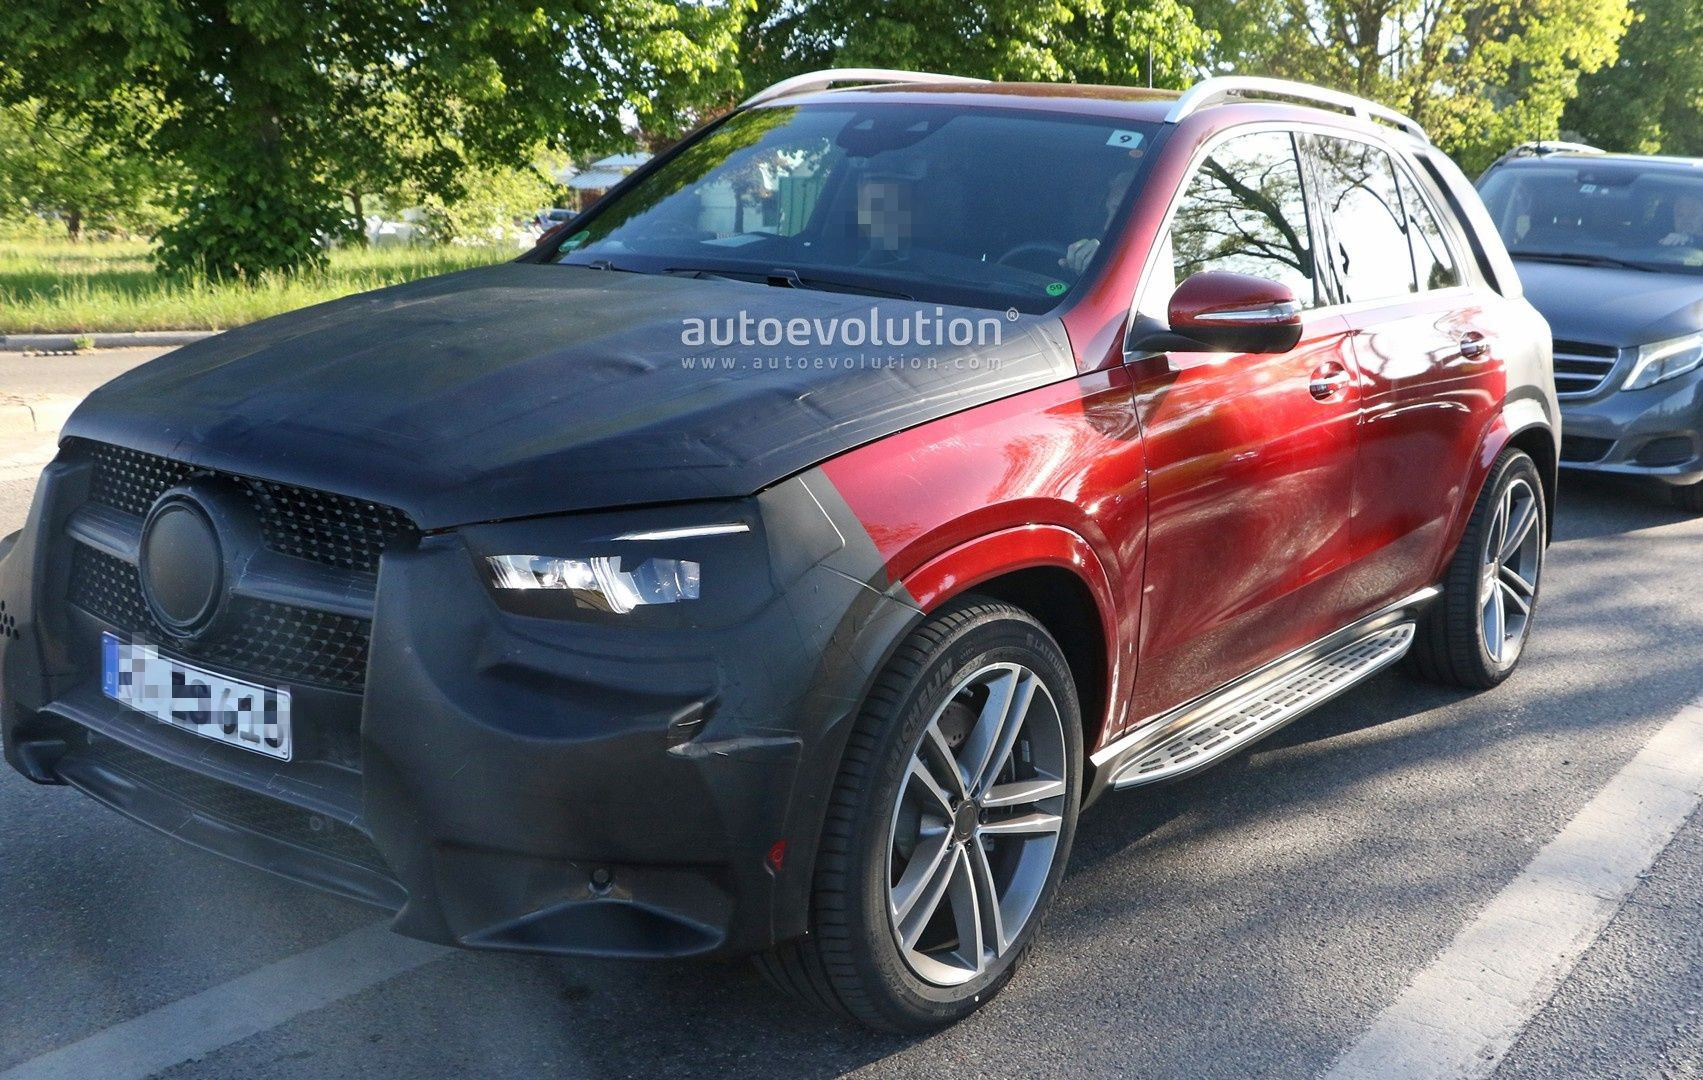 2019 mercedes gle class shows uncamouflaged design of sexy red body autoevolution. Black Bedroom Furniture Sets. Home Design Ideas